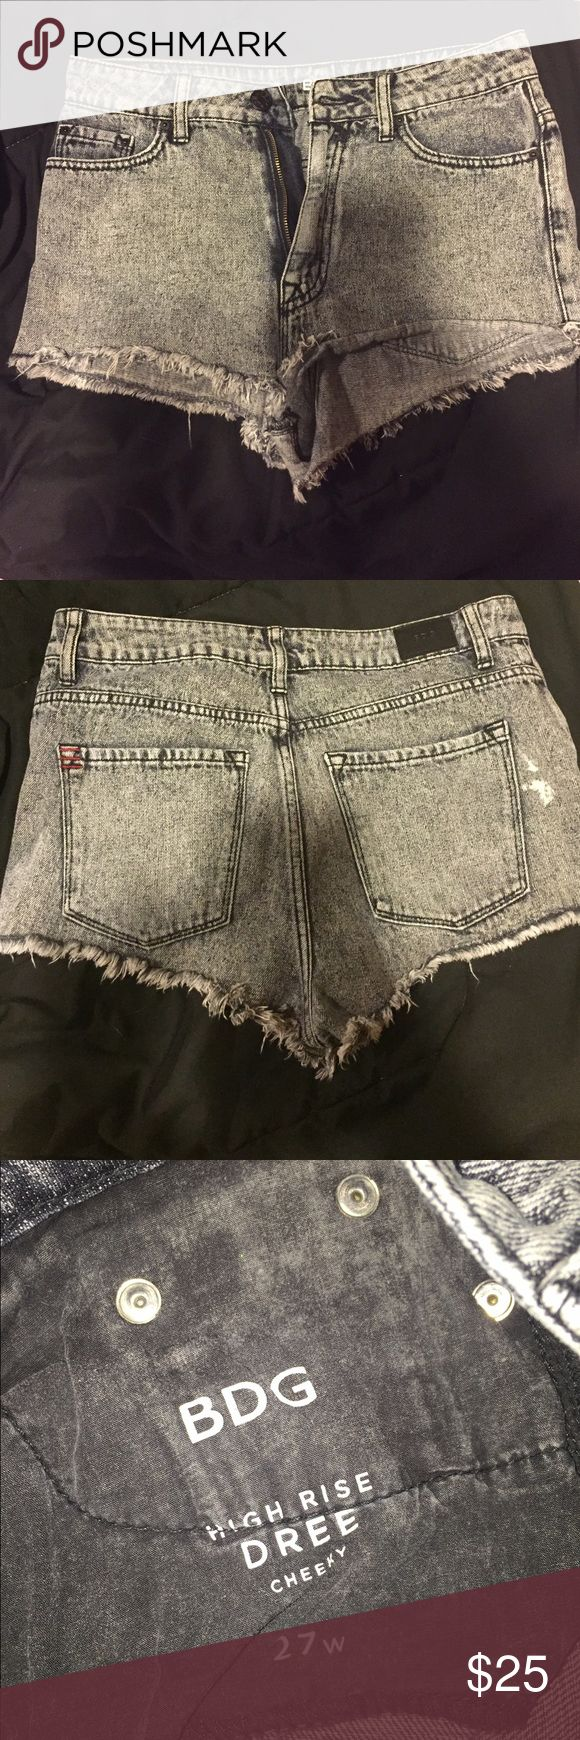 ◾️BLACK FRIDAY SALE! High waisted shorts Grunge style high waisted shorts.. Acid wash design .. Dark gray/light black .. Fringe bottom .. Size 27W.. The white stain on the back came on the design (it's not a bleach stain lol!) Urban Outfitters Shorts Jean Shorts